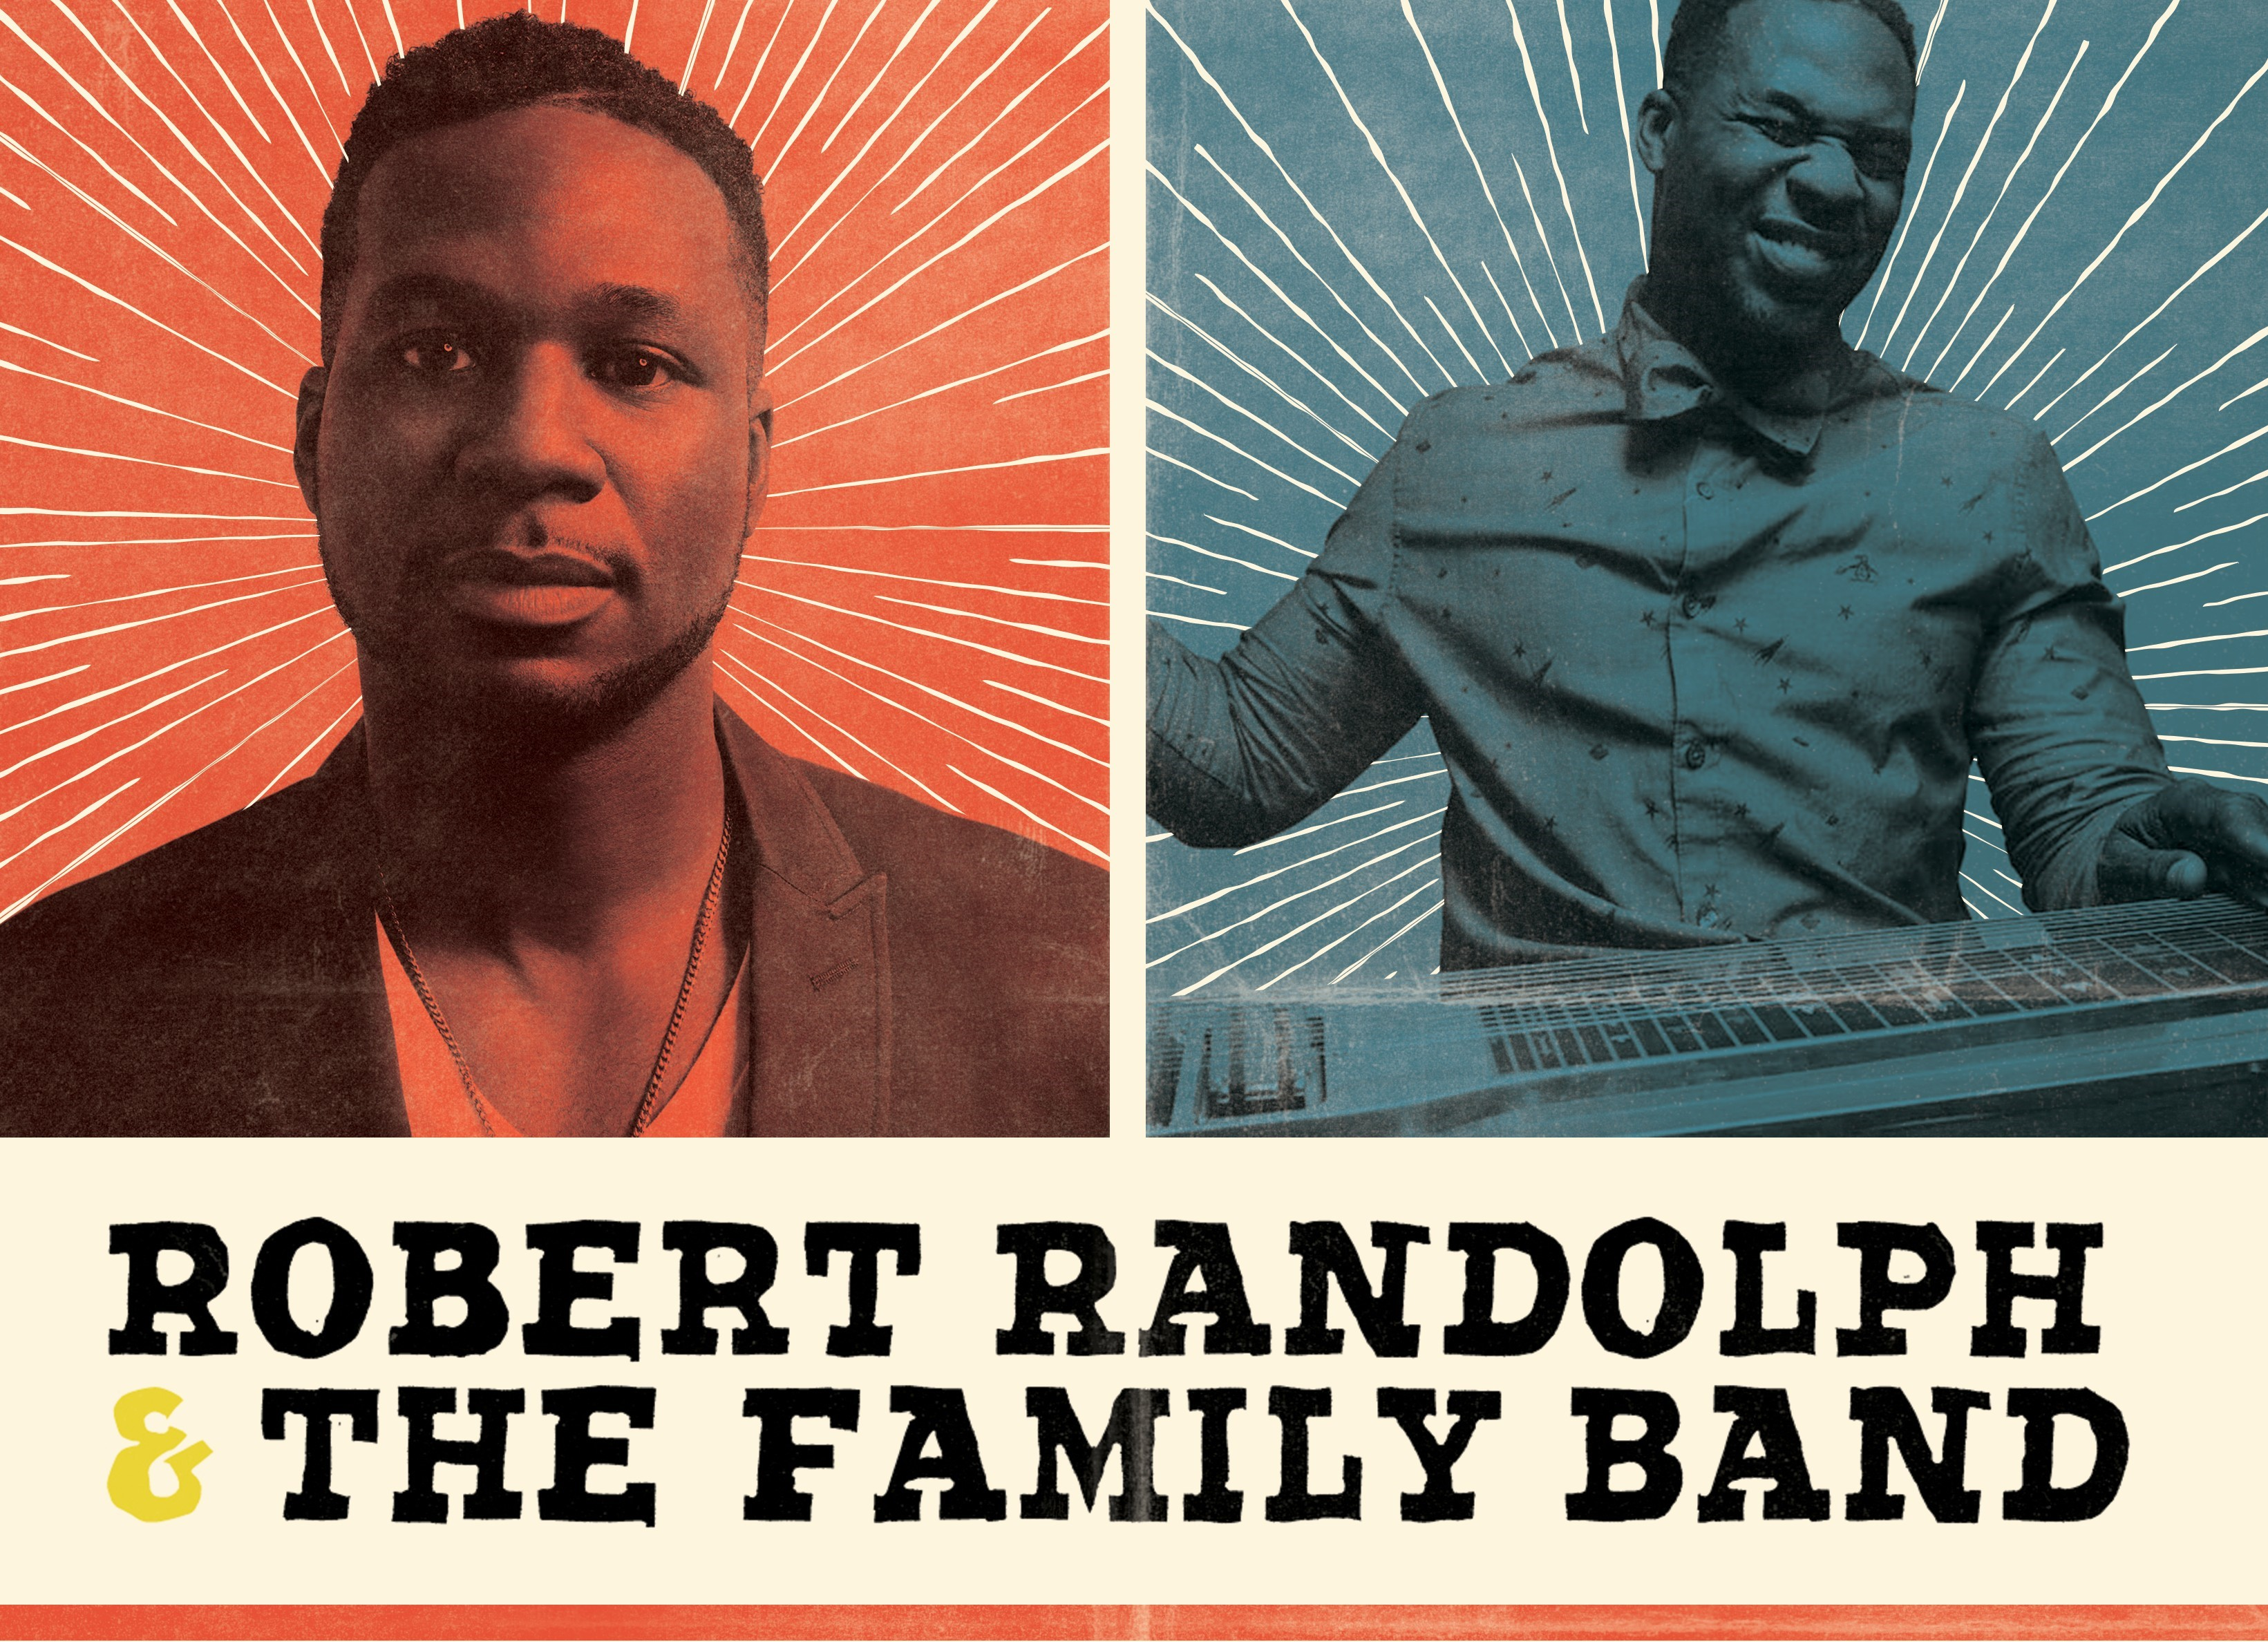 Robert Randolph & the Family Band On Tour Now!